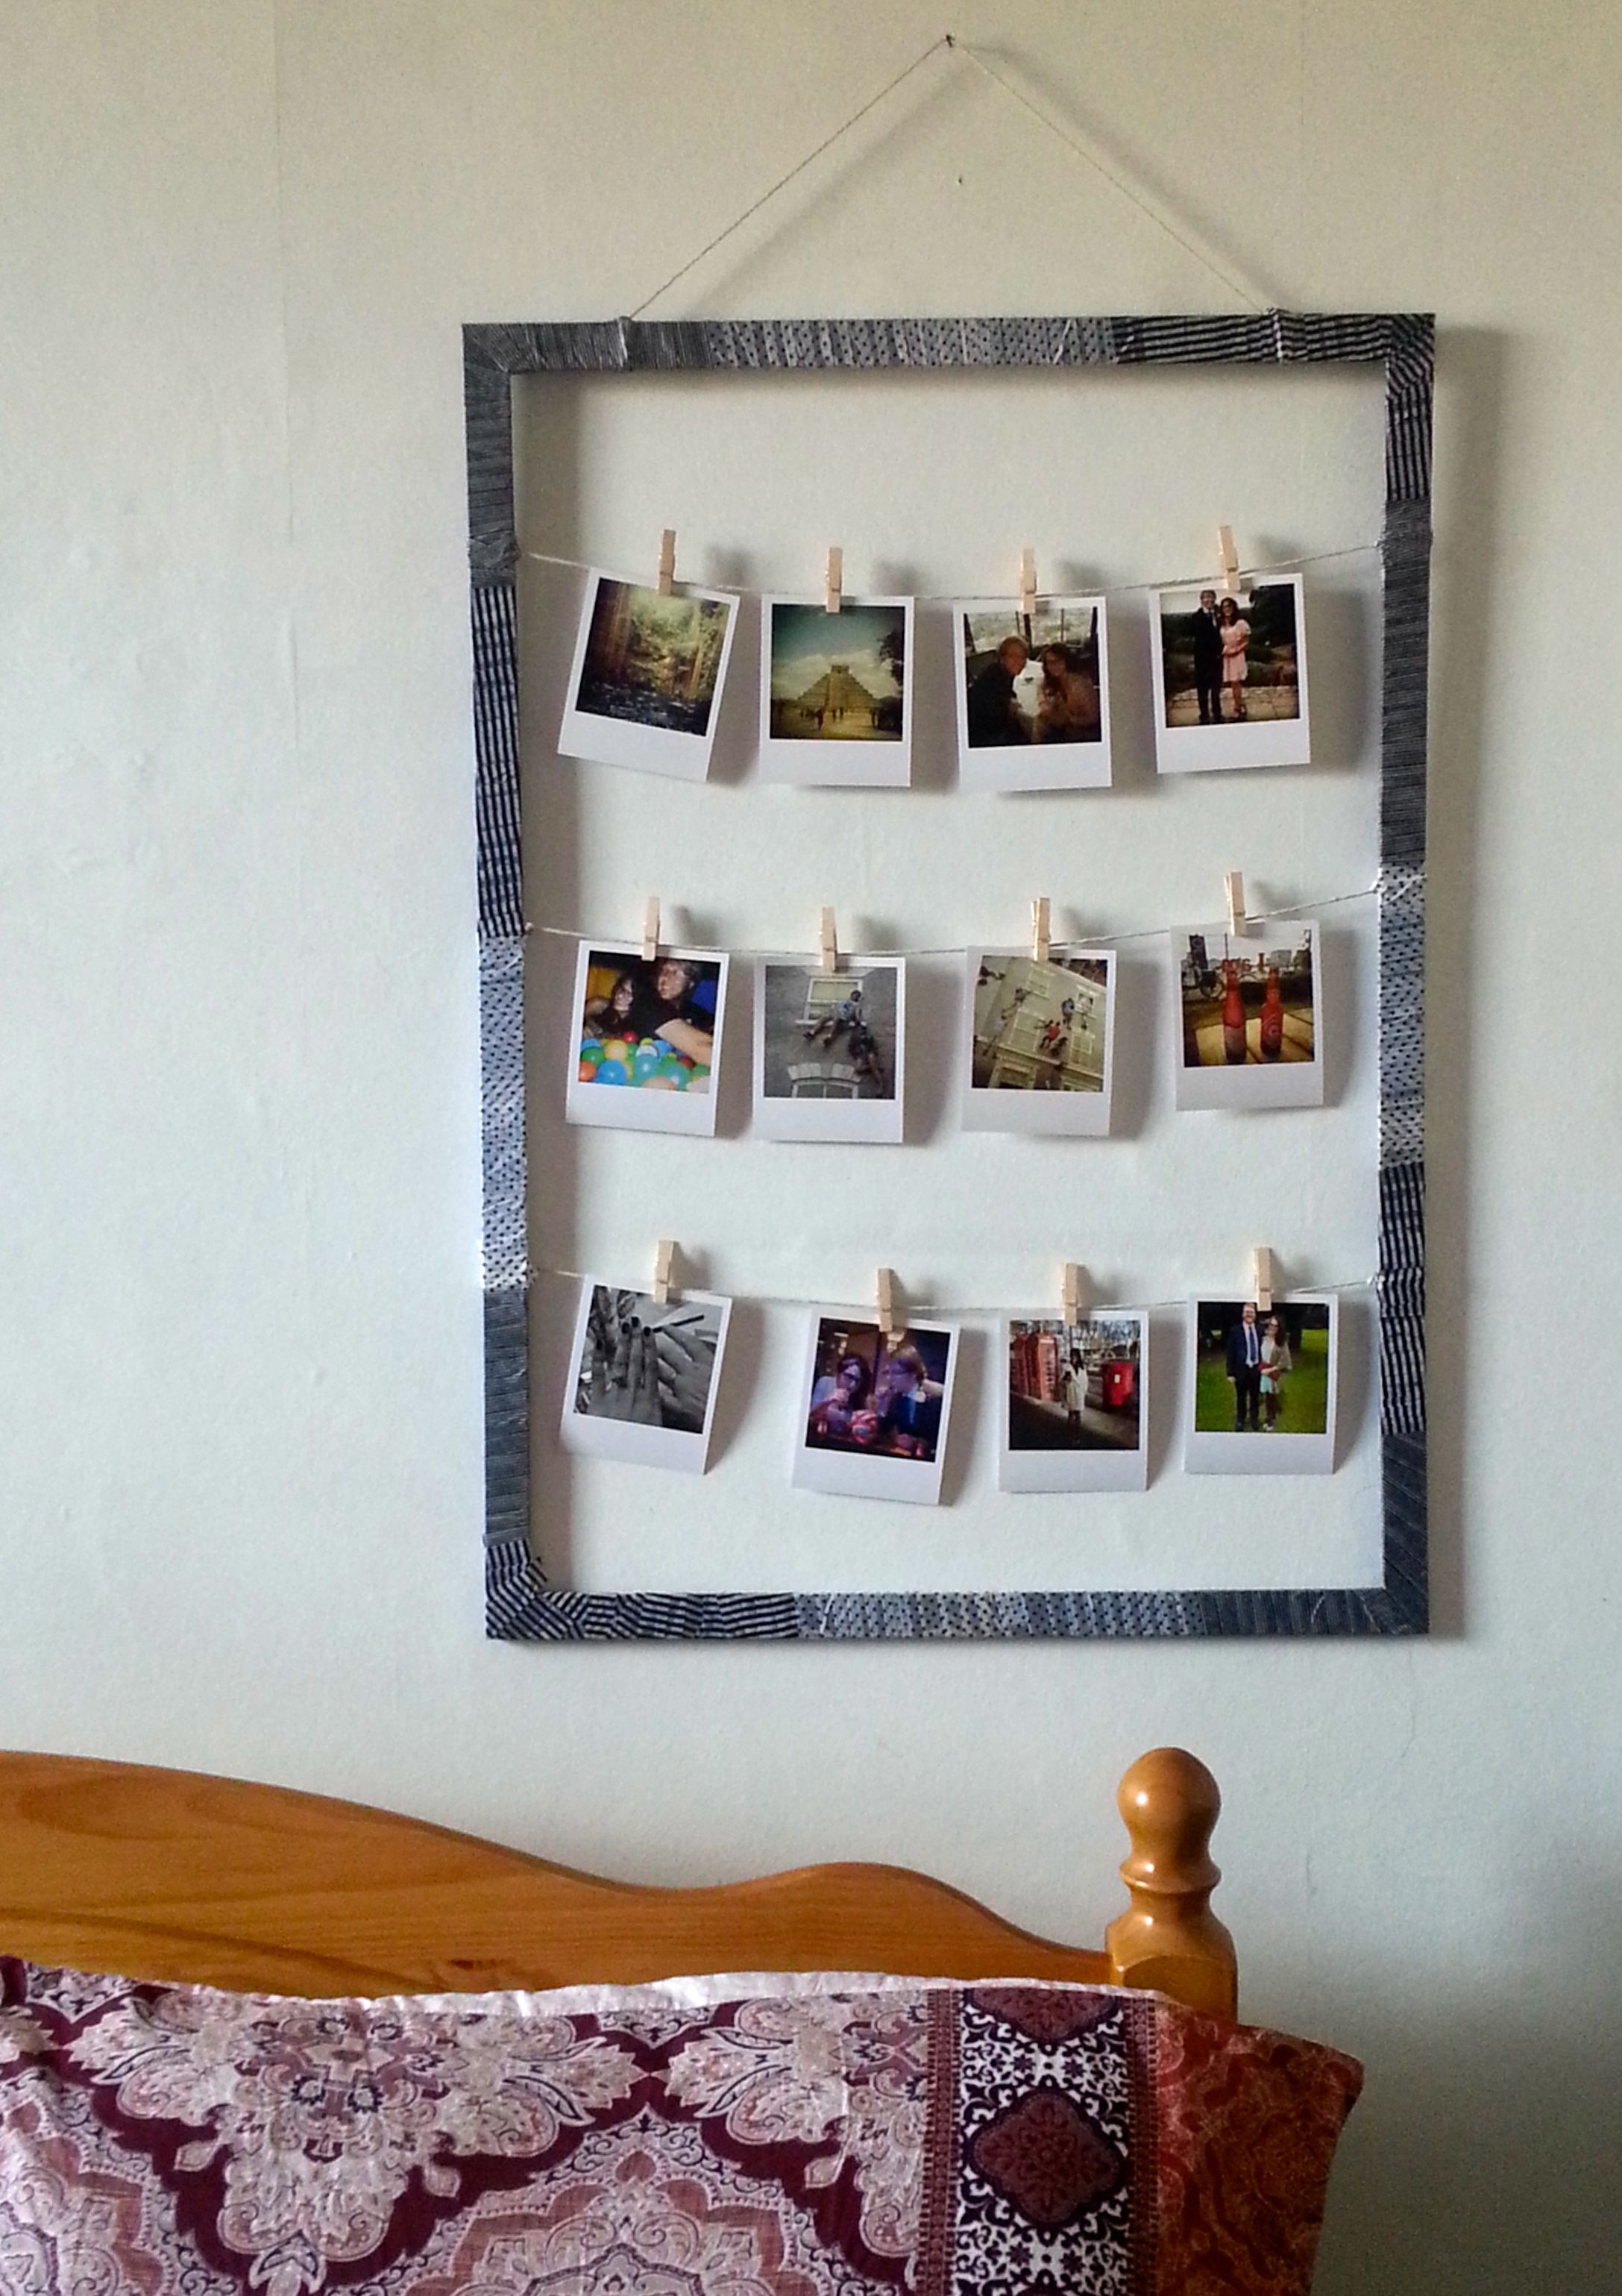 Diy Pinterest Diy Pinterest Inspired Project For Polaroid Style Picture Display